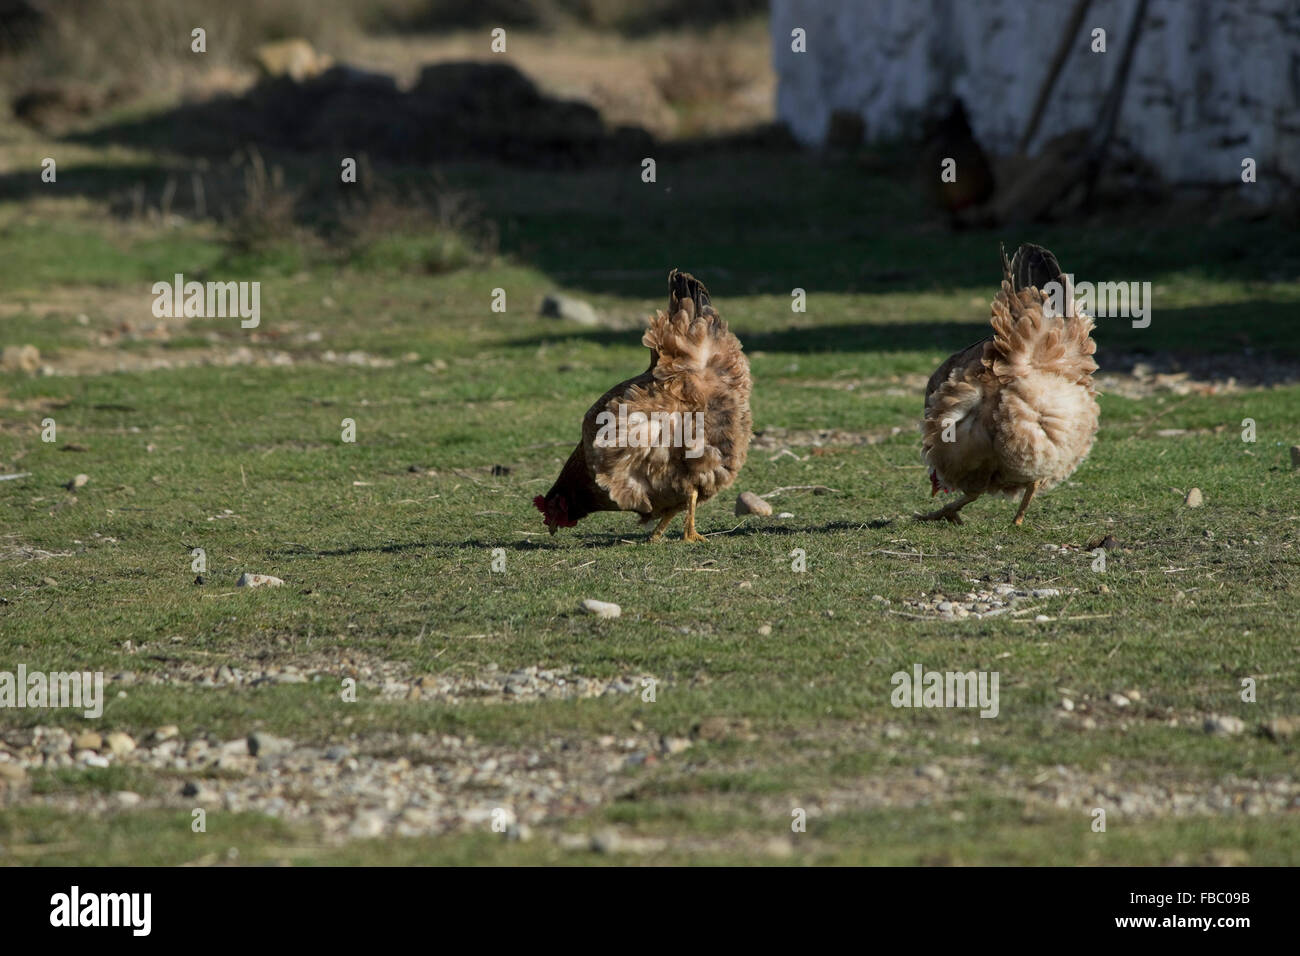 Free range greek hens/ chicken poultry grazing in the countryside in an organic farm on Lemnos or limnos island, - Stock Image